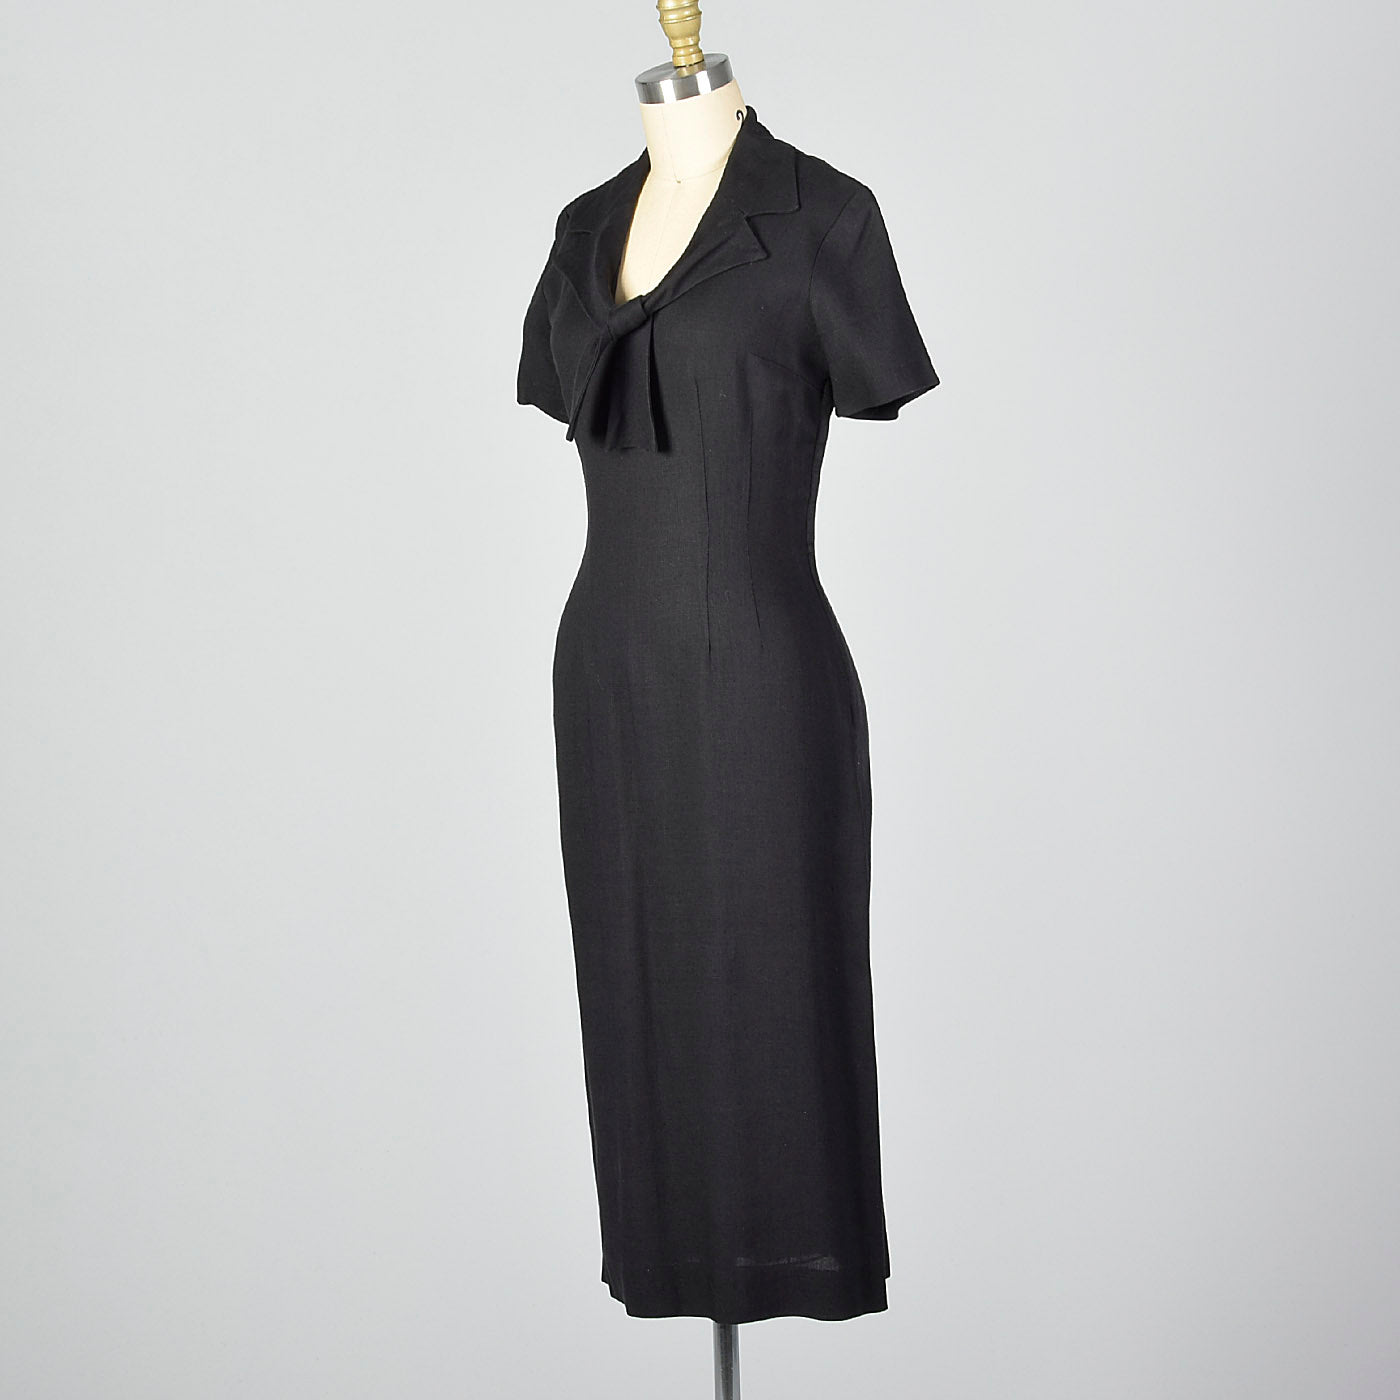 1950s Black Pencil Dress with Pussybow